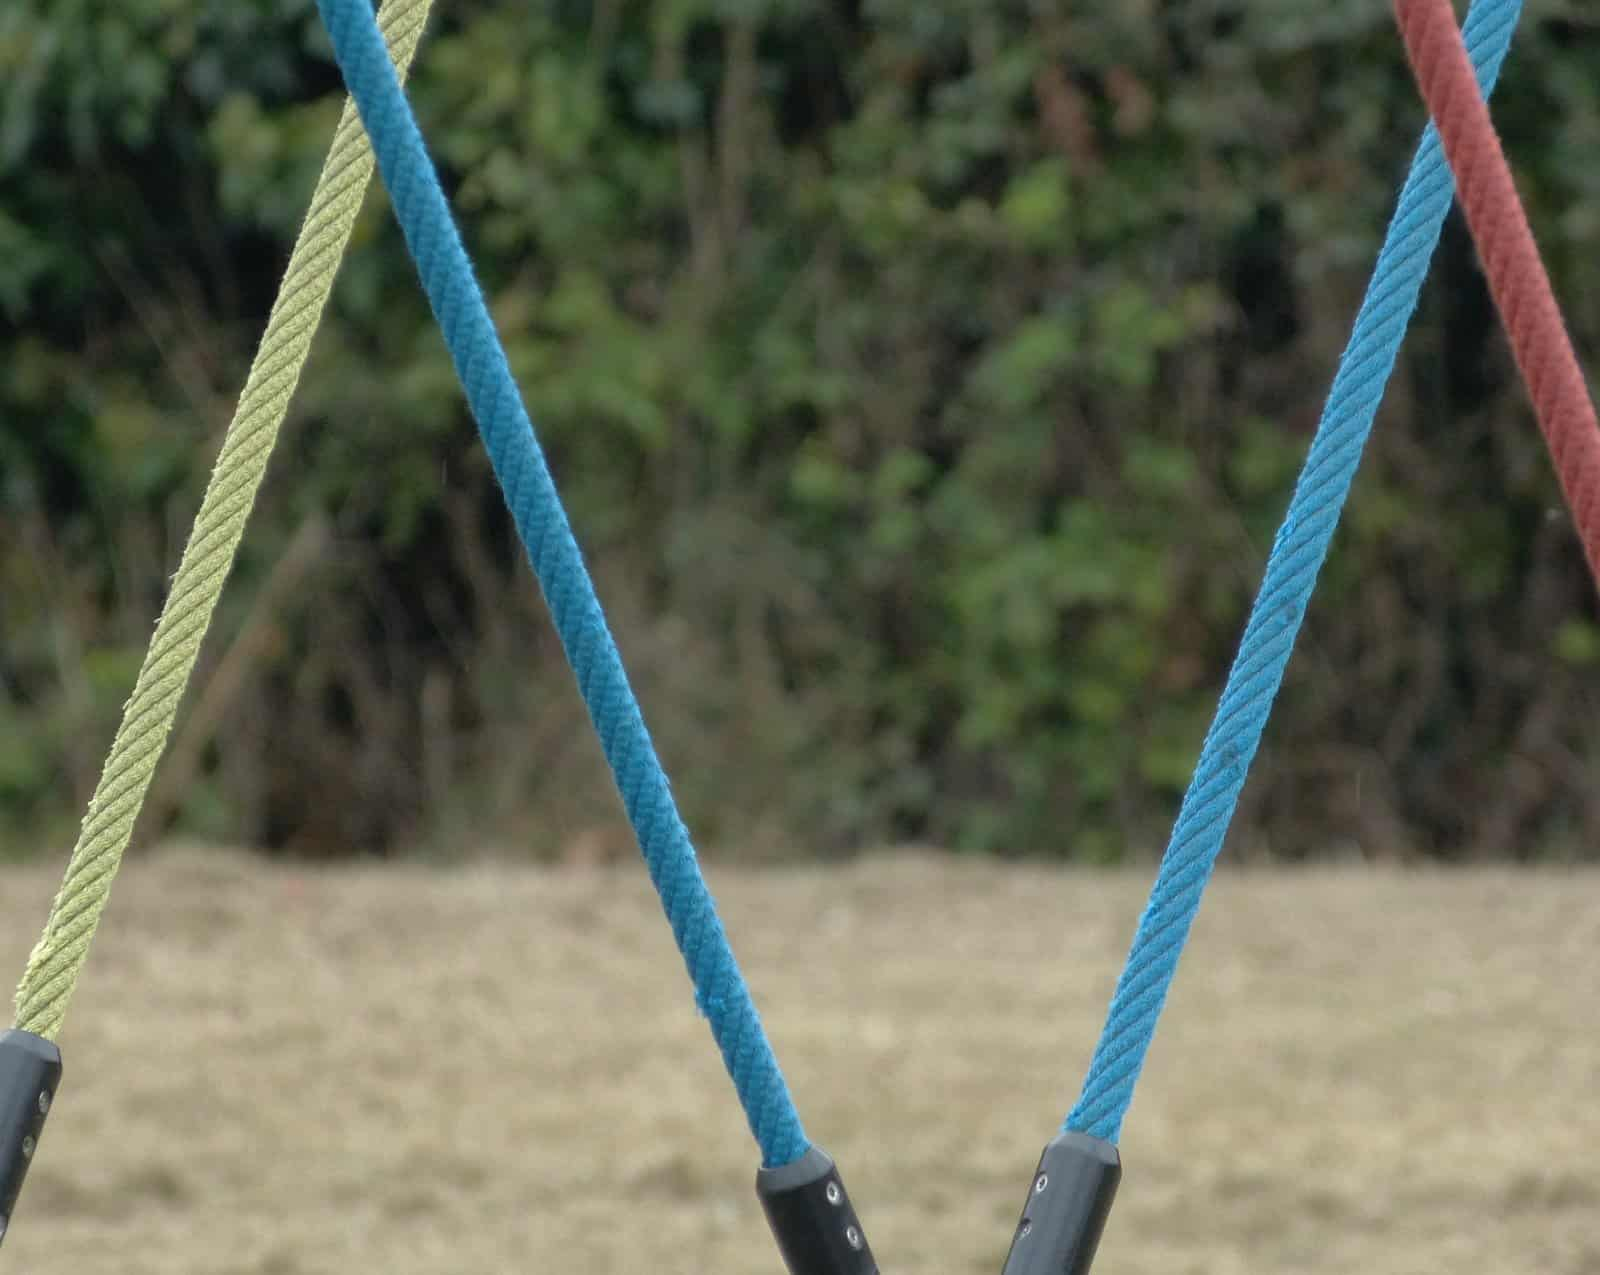 Coloured ropes from a swing